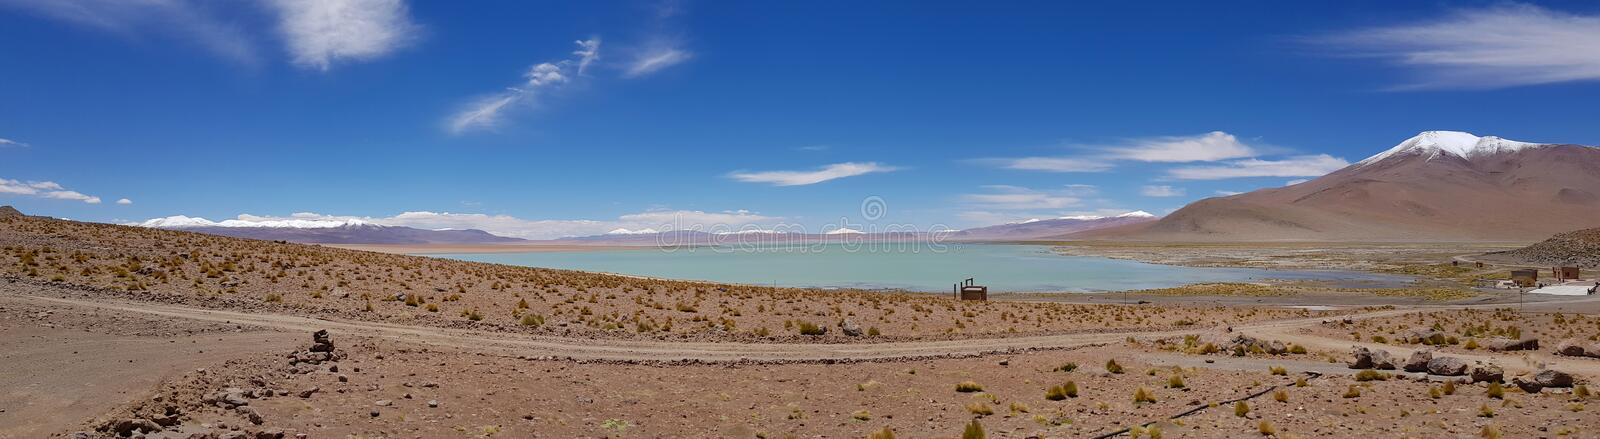 View of the Salar de Chalviri near Termas de Polques hot springs, Bolivia. Landscape of the Andean highlands of Bolivia royalty free stock photography